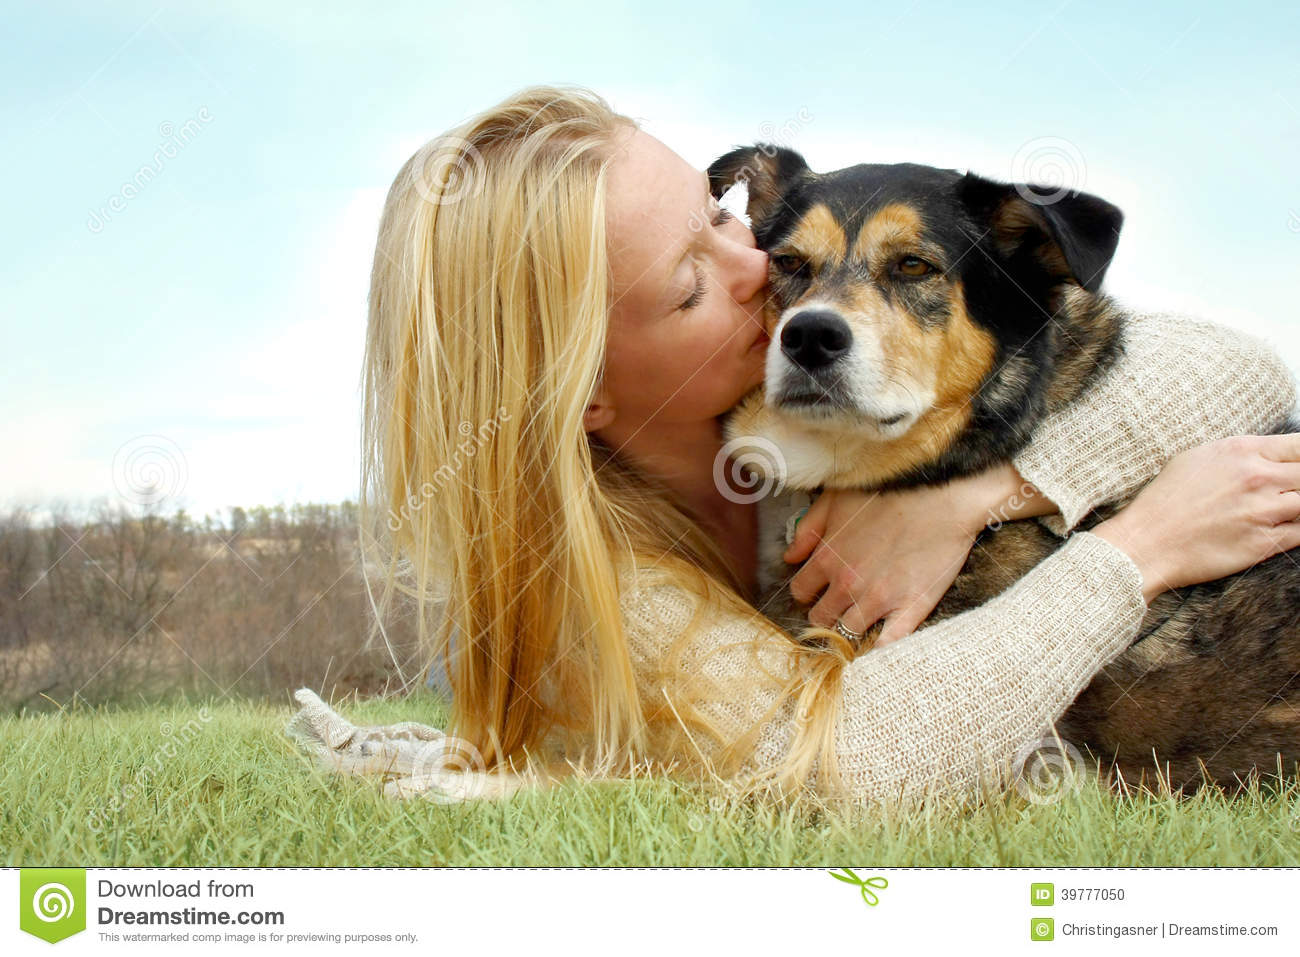 Jeune femme embrassant le berger allemand Dog Outside